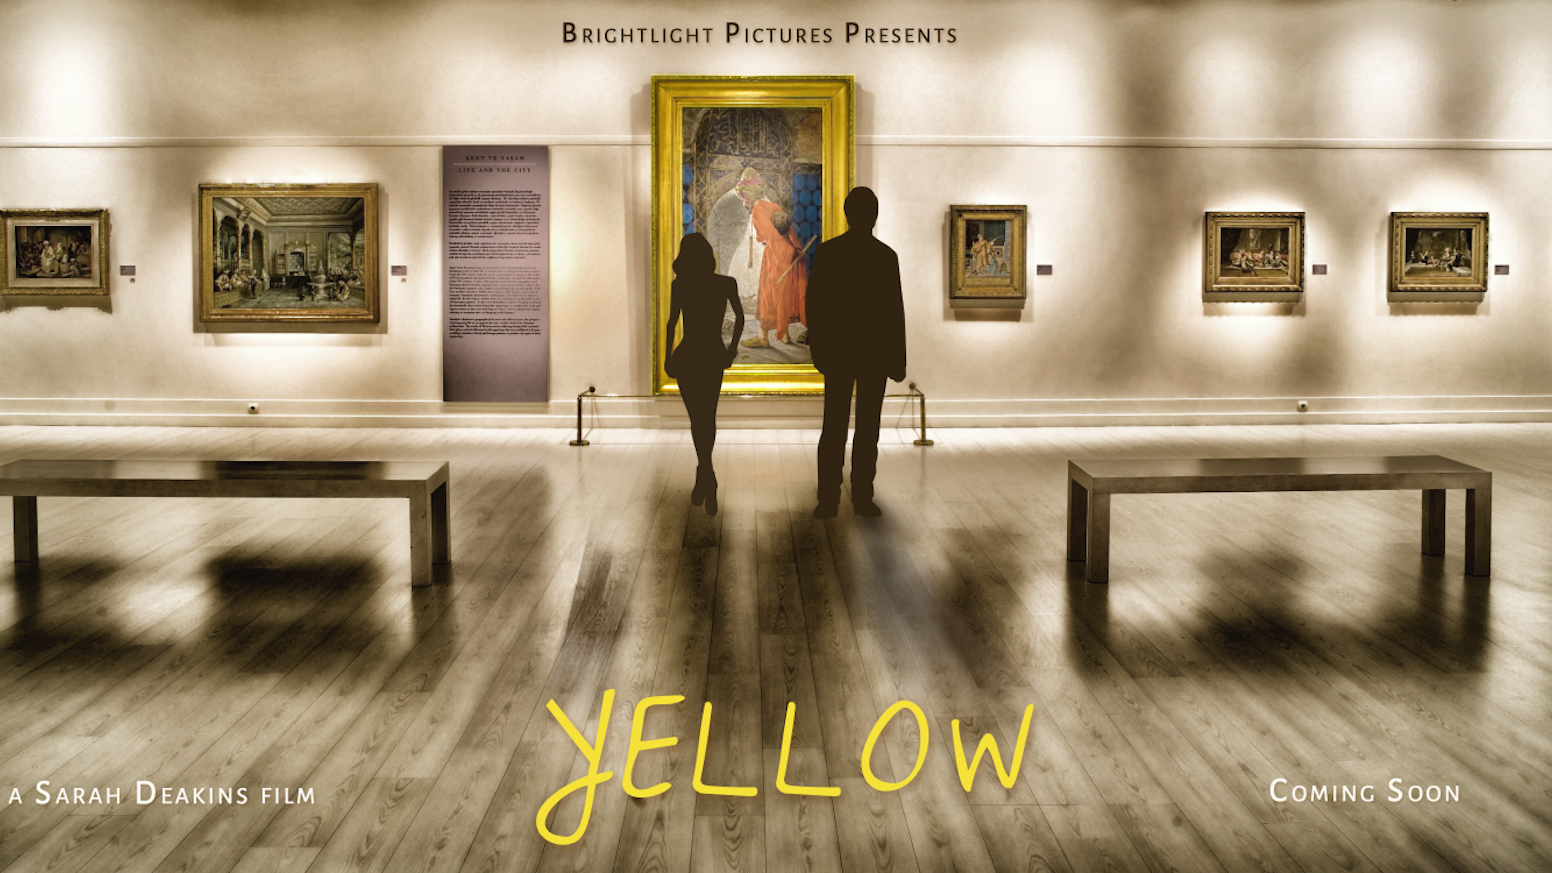 YELLOW follows 10 characters on a seemingly ordinary afternoon in an art gallery, as each experiences a crossroads in their lives.